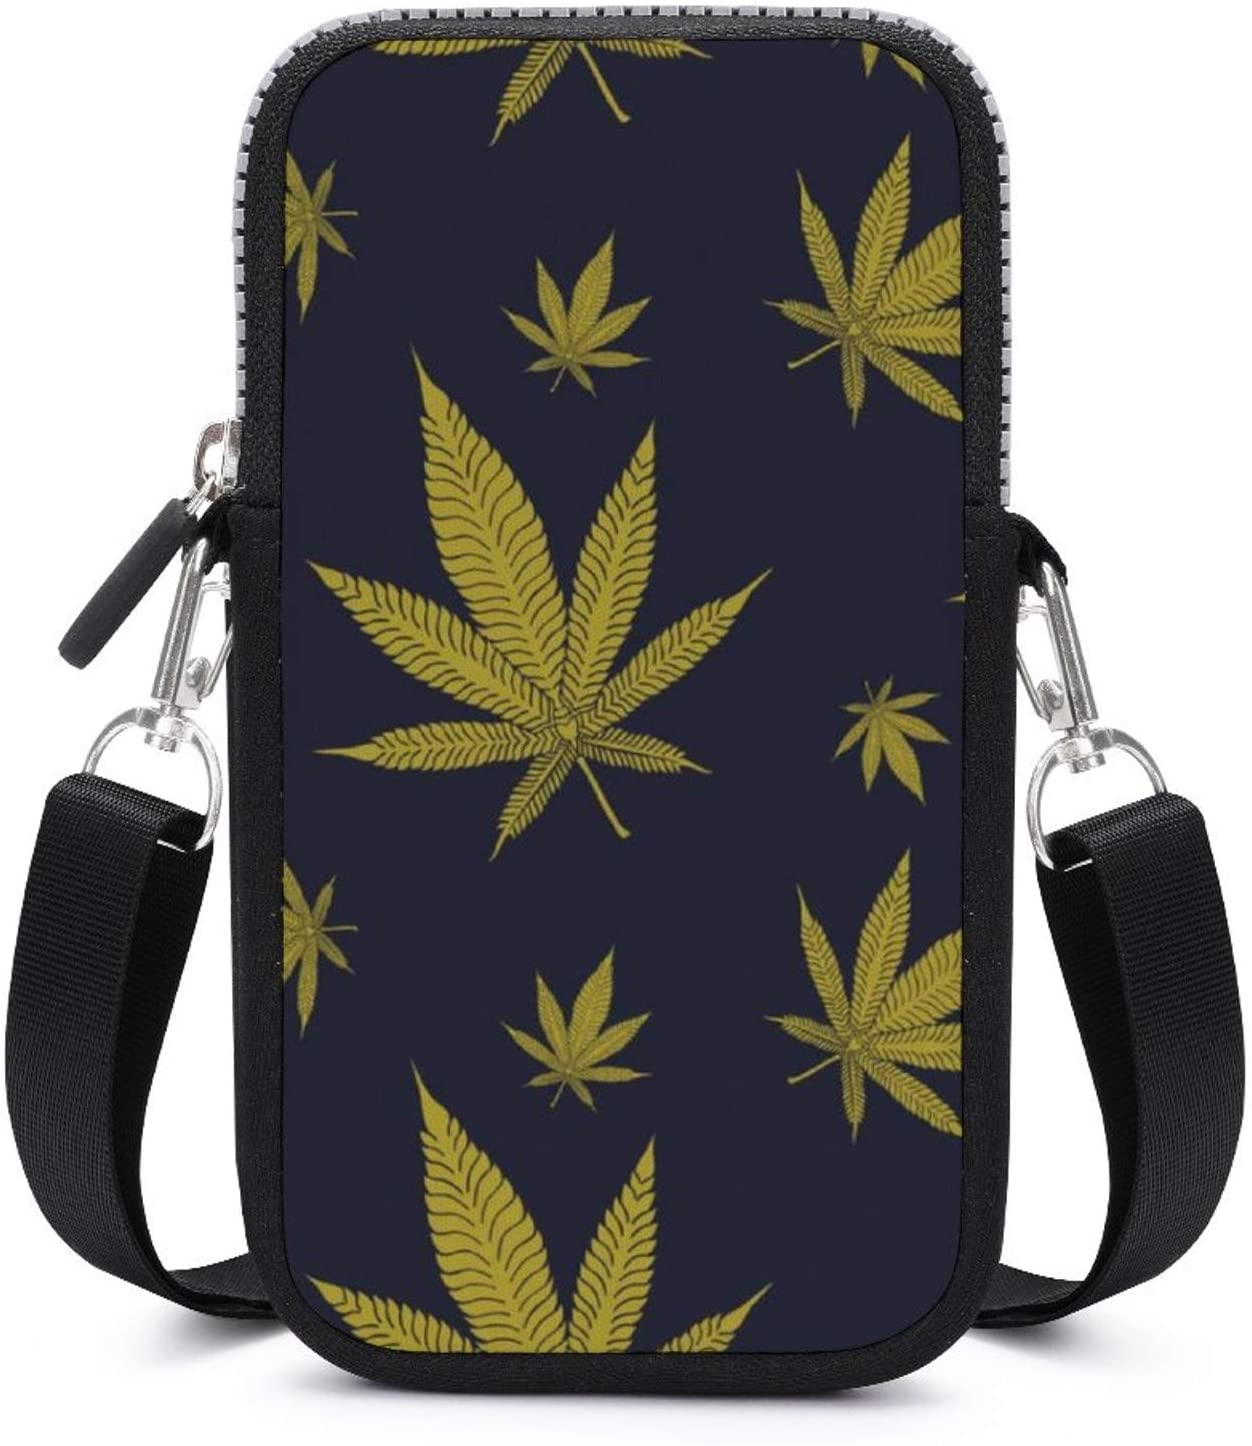 NiYoung Womens and Girls Phone Bag Wallet Crossbody Phone Holder Pouch (Marijuana Weed Cannabis Leaves Pattern)